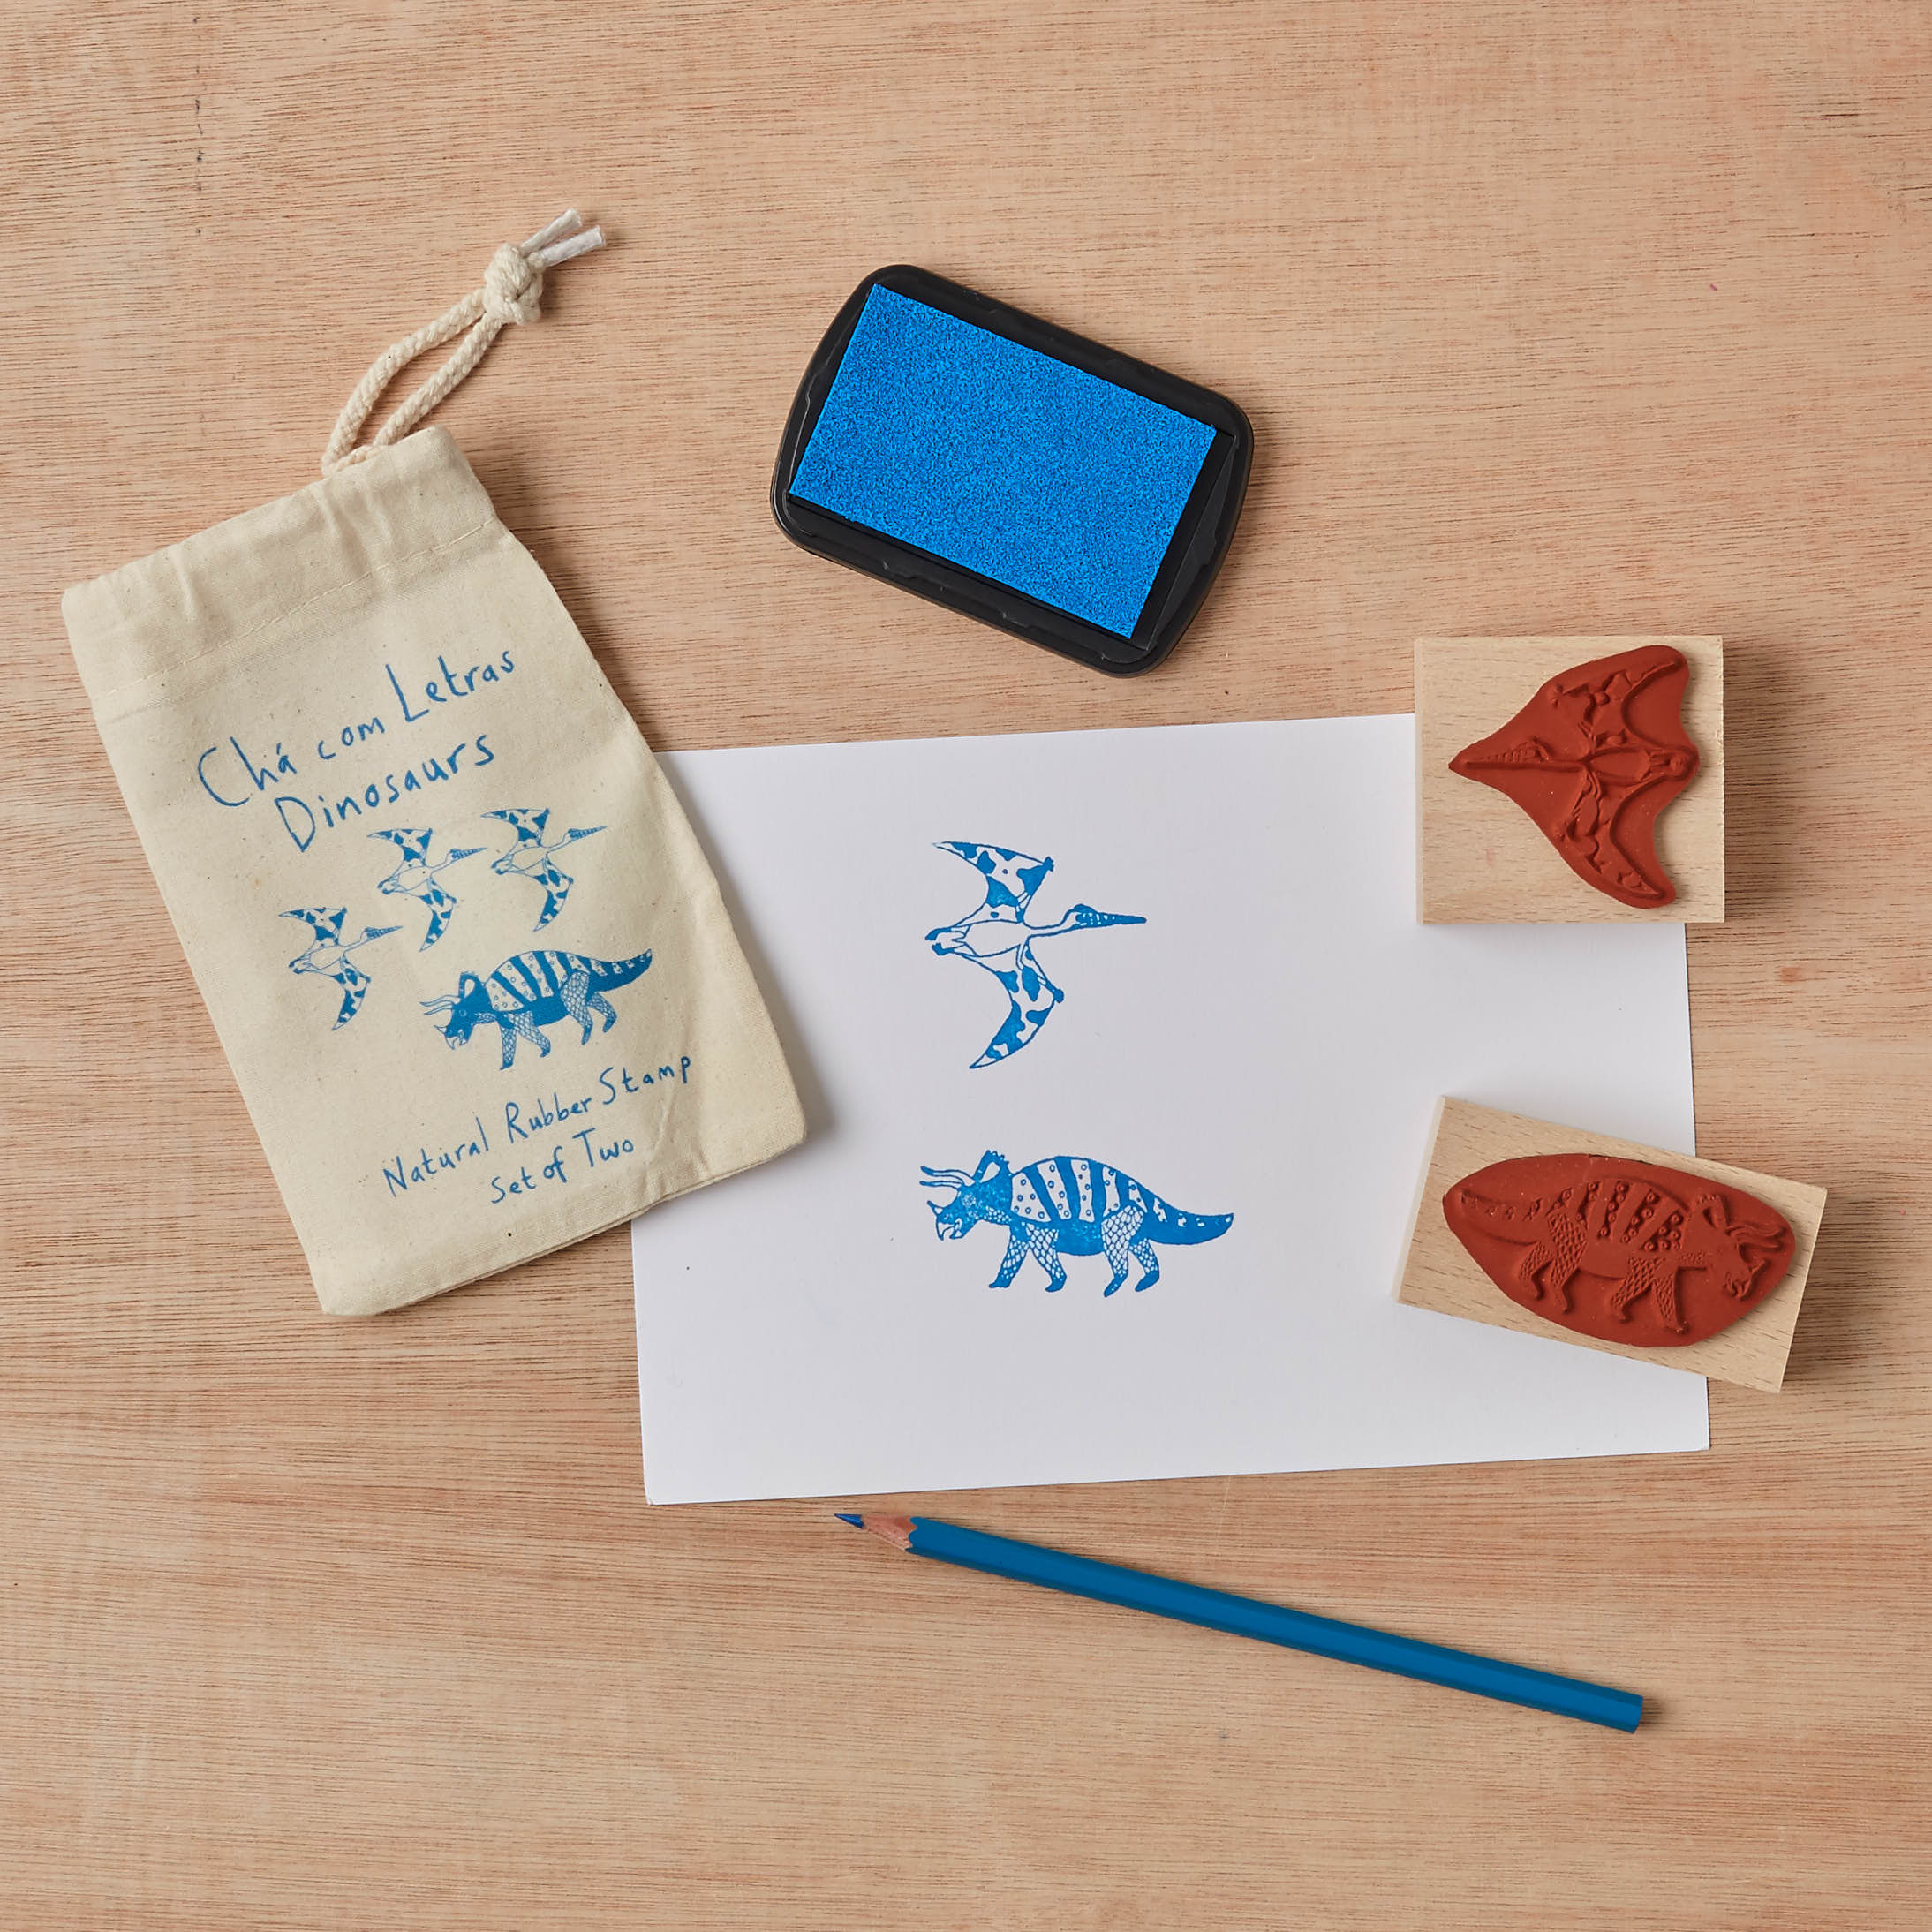 Dinosaurs rubber stamps singles from £3.jpg